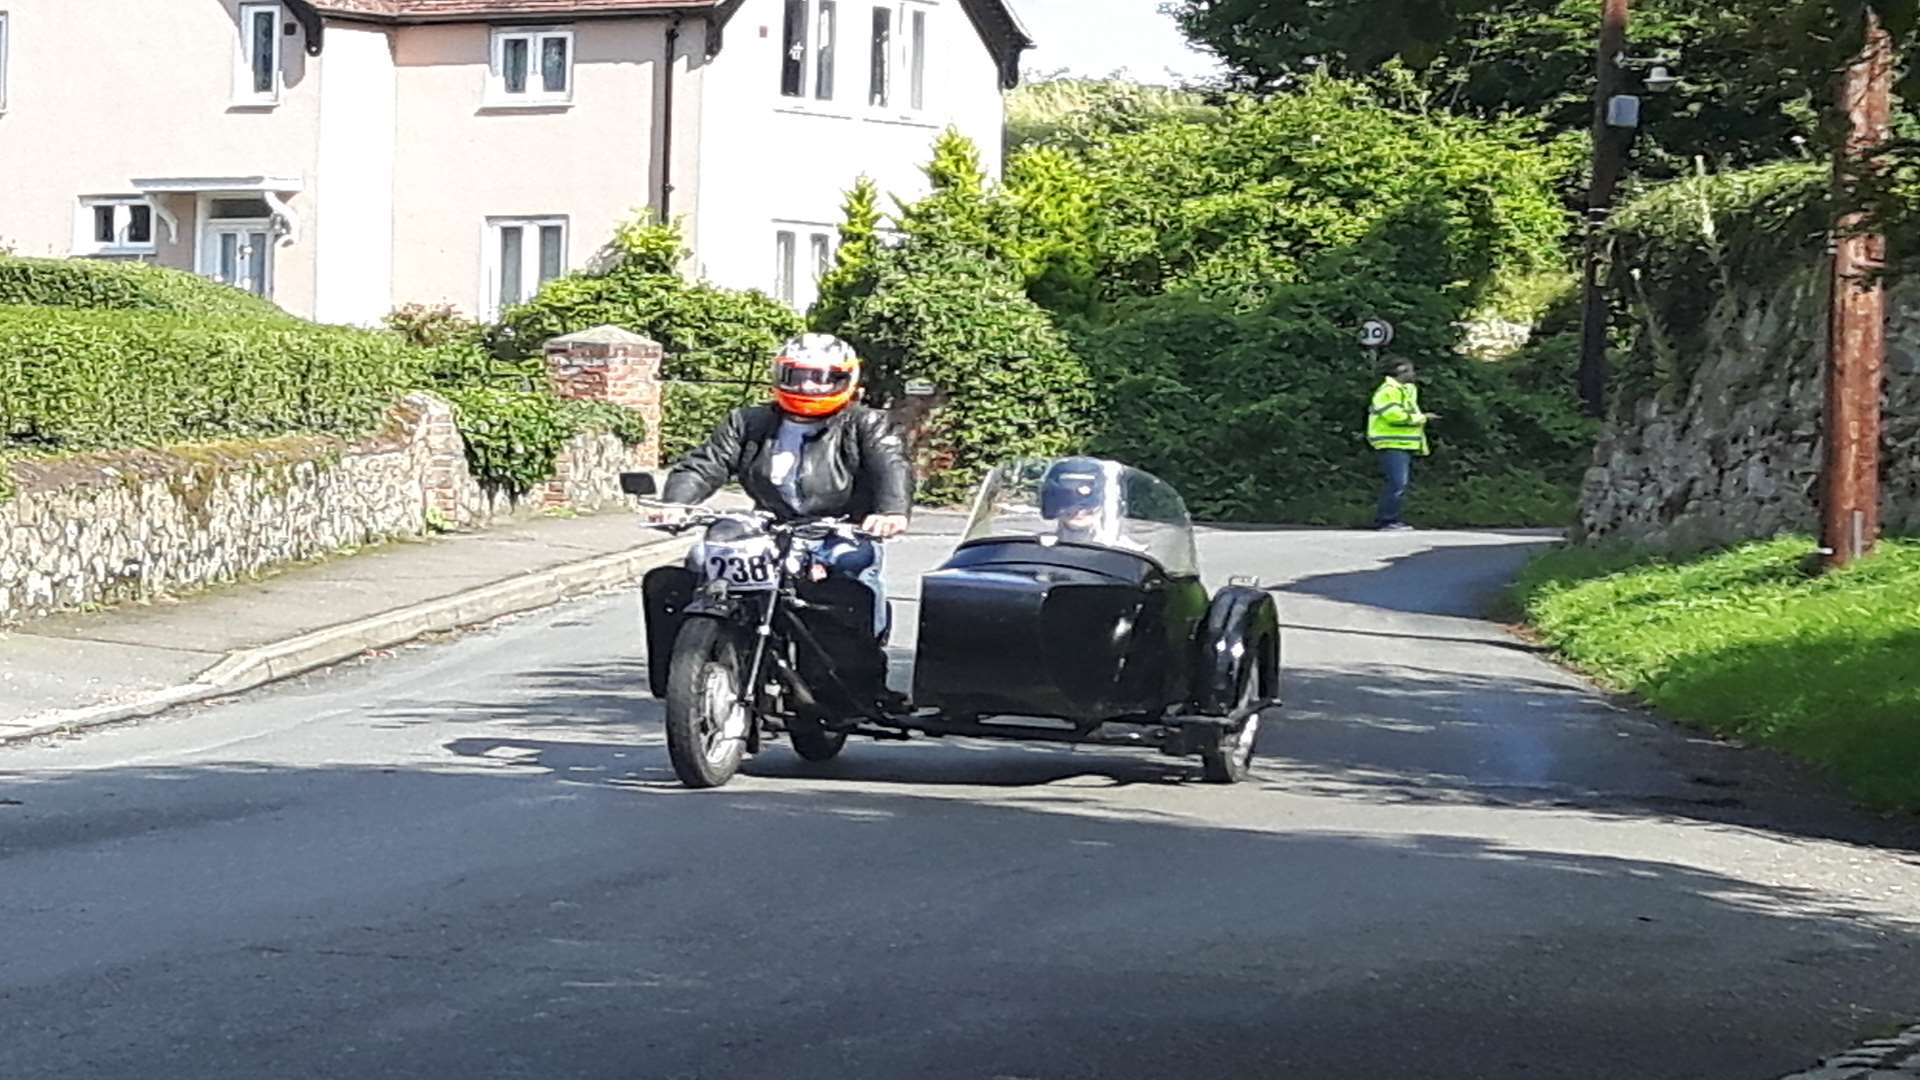 A motorbike and sidecar spotted heading through Birling at this year's International West Kent Run